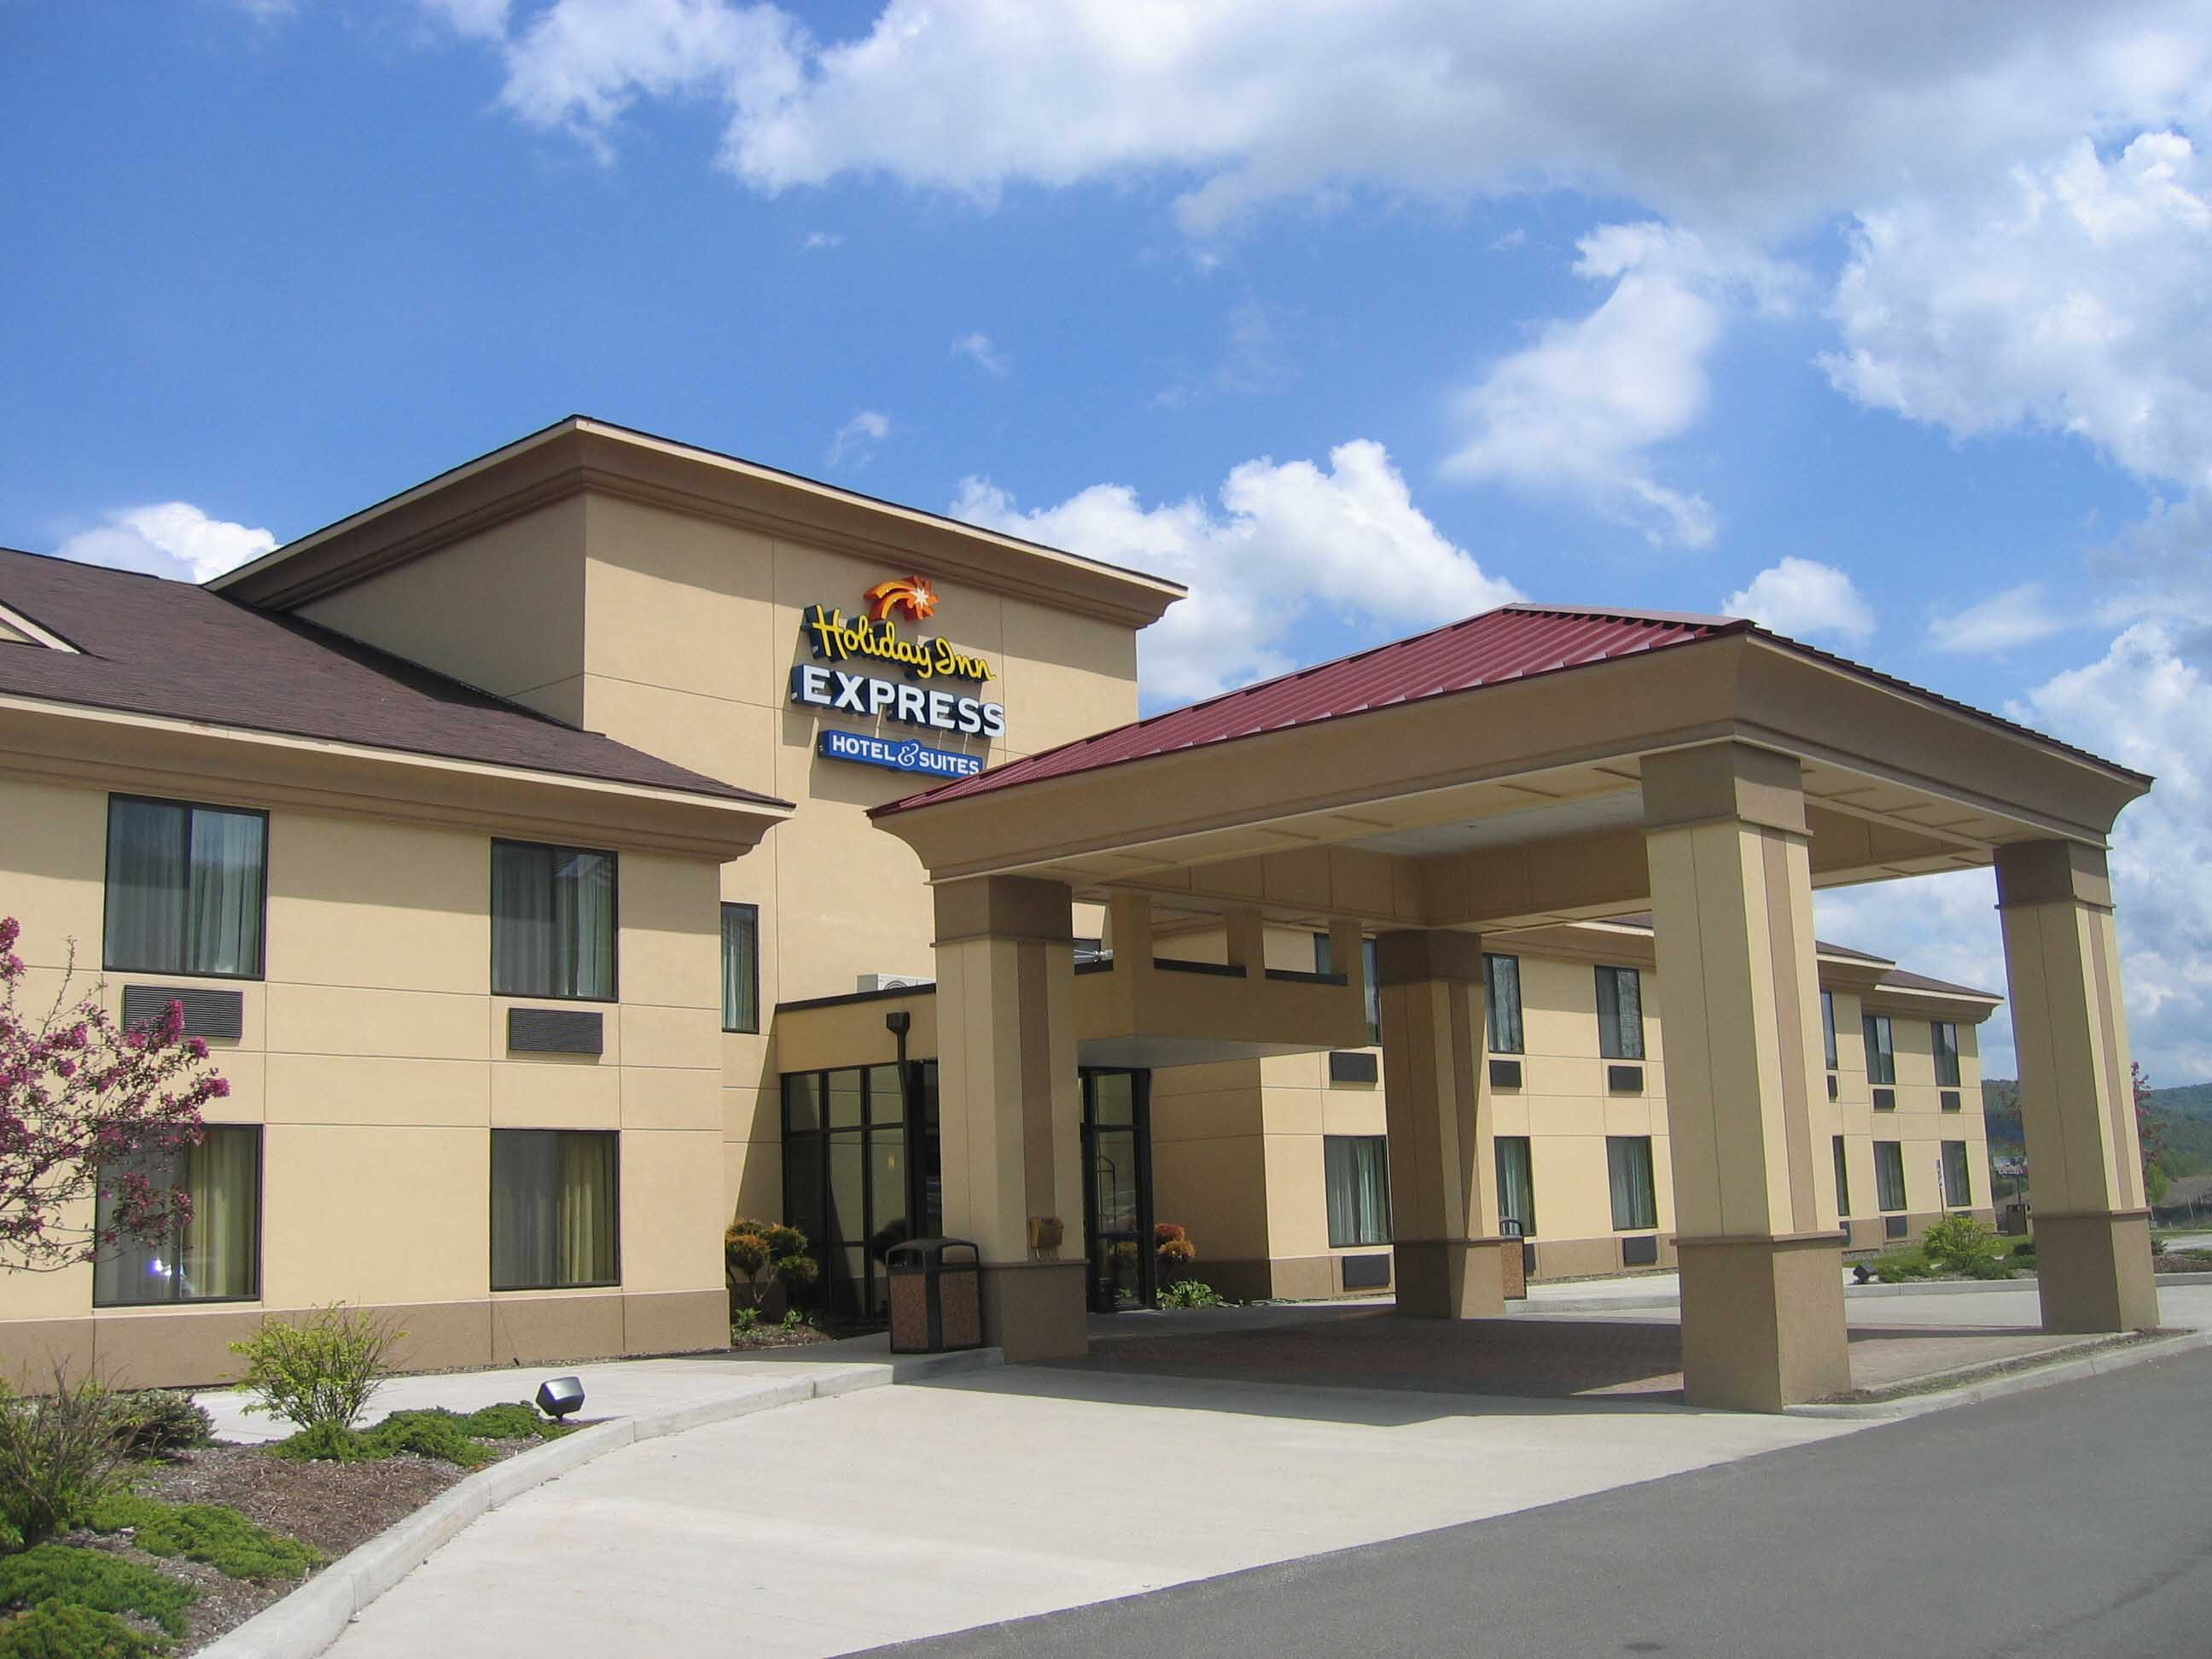 holiday inn express hotel: